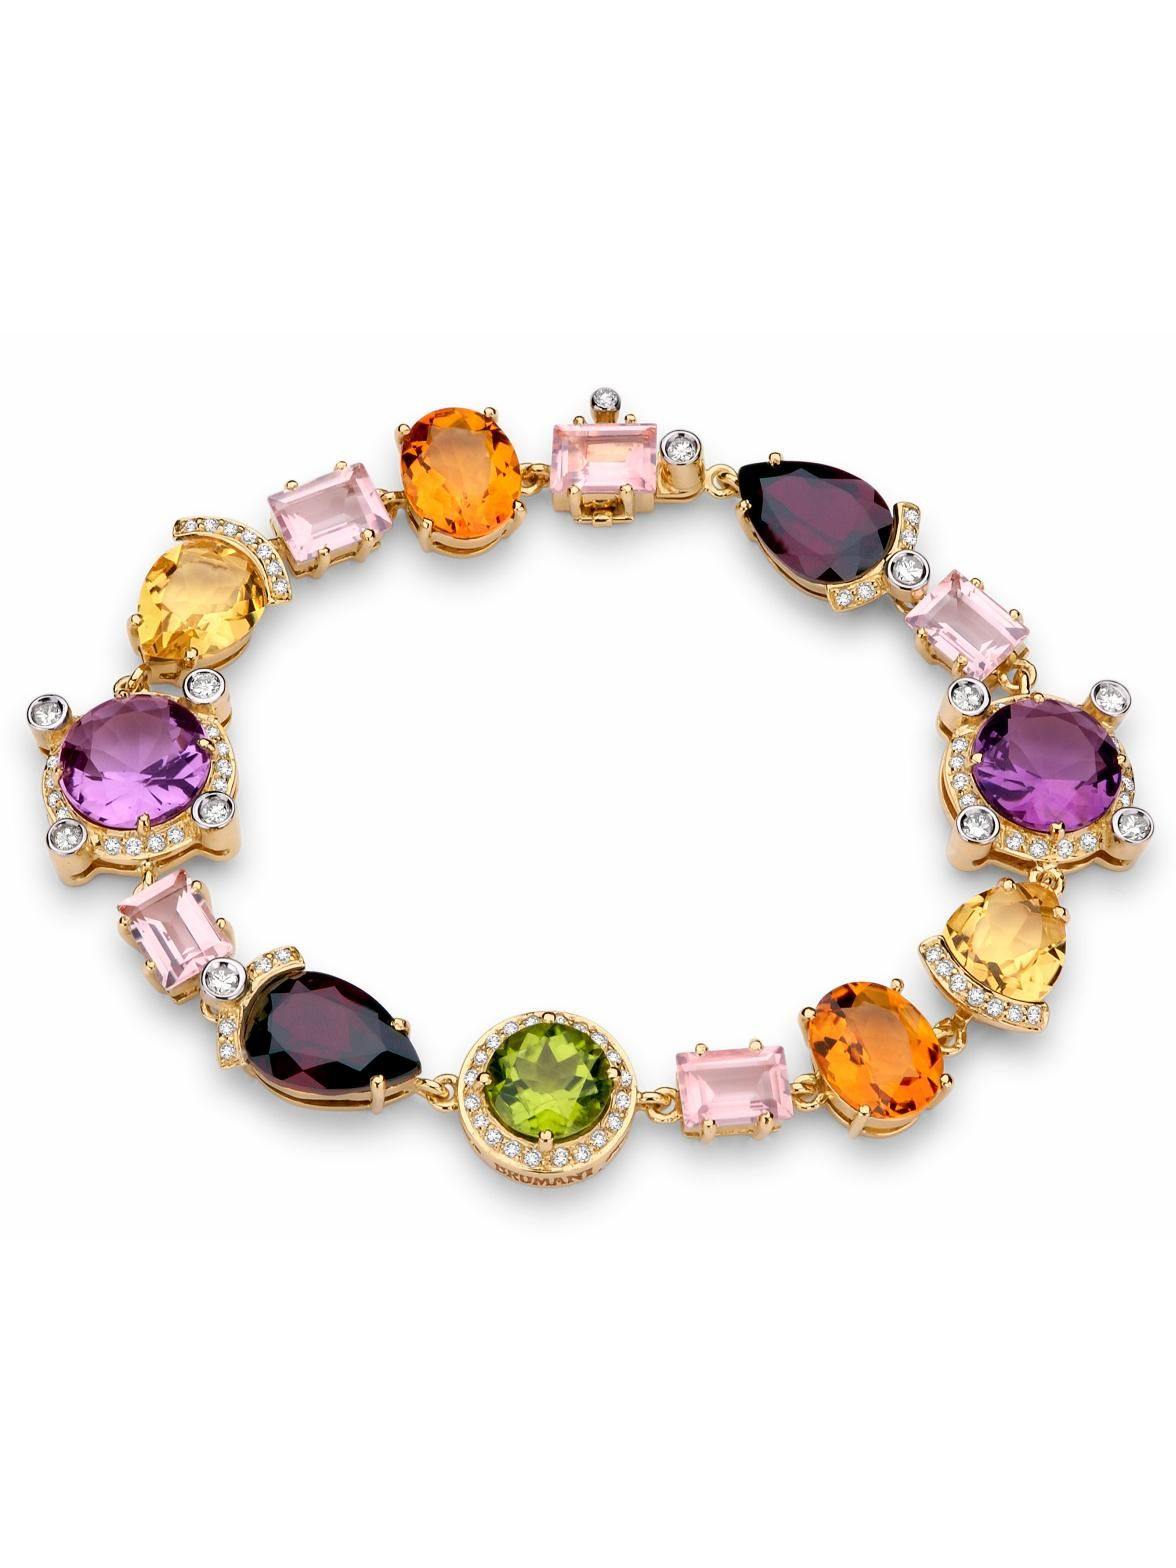 Brumani 18k Yellow Gold Mixed Stone Diamond Bracelet at London Jewelers!